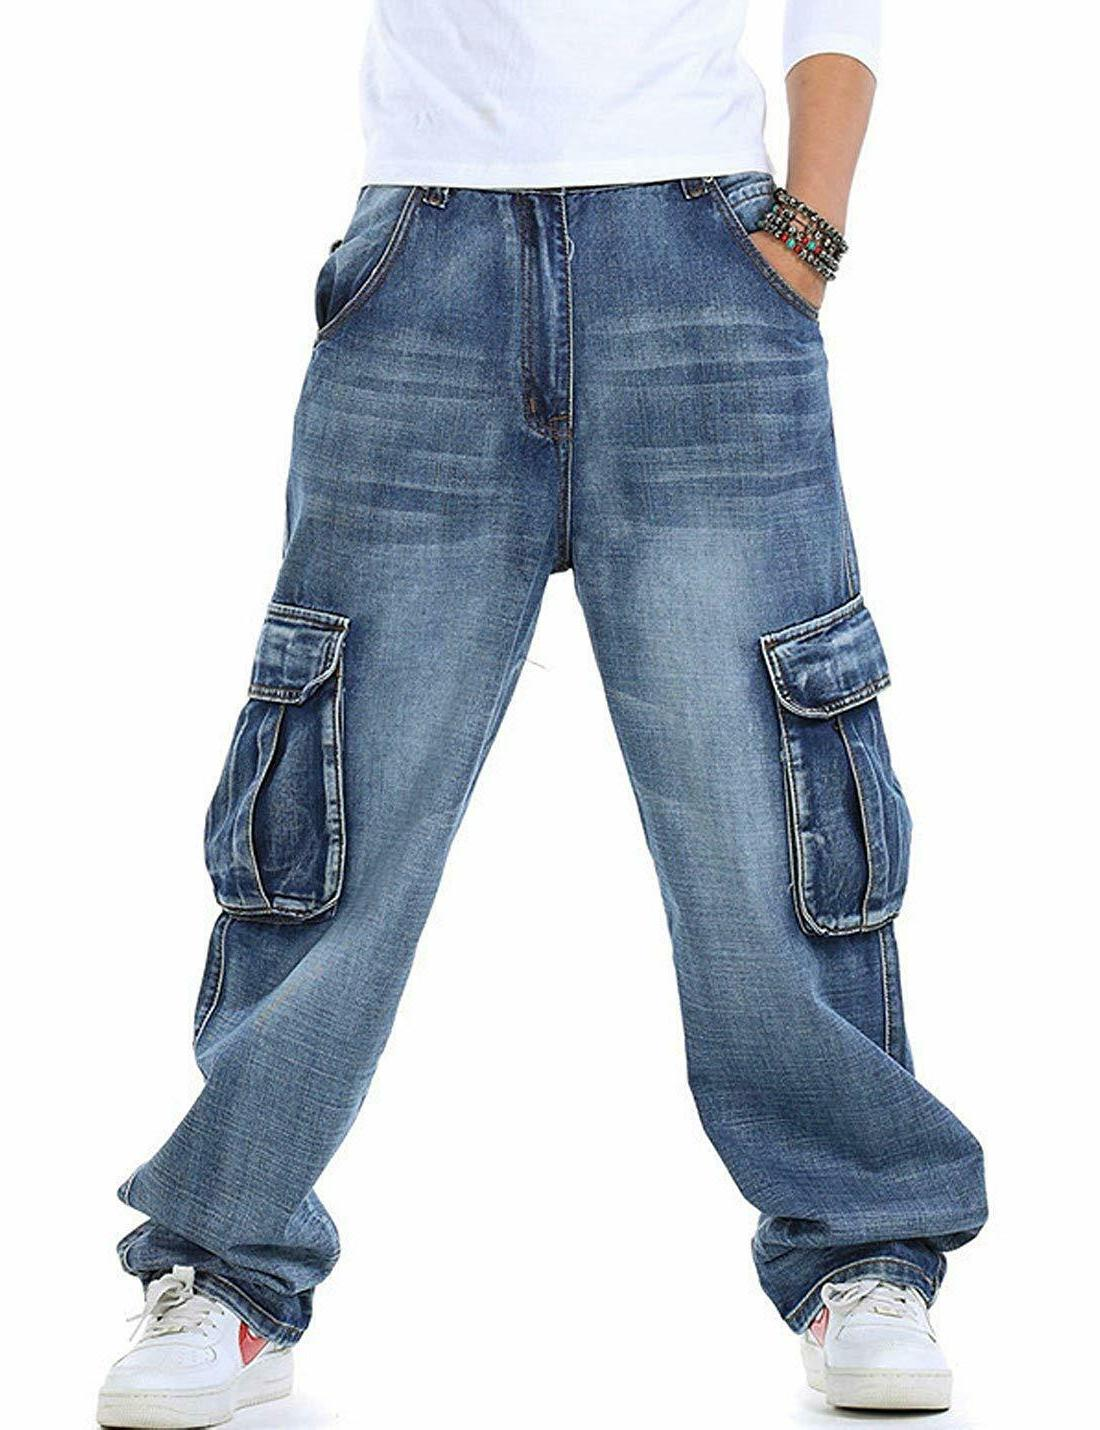 Yeokou Men's Casual Loose Hip Denim Pants with Pockets